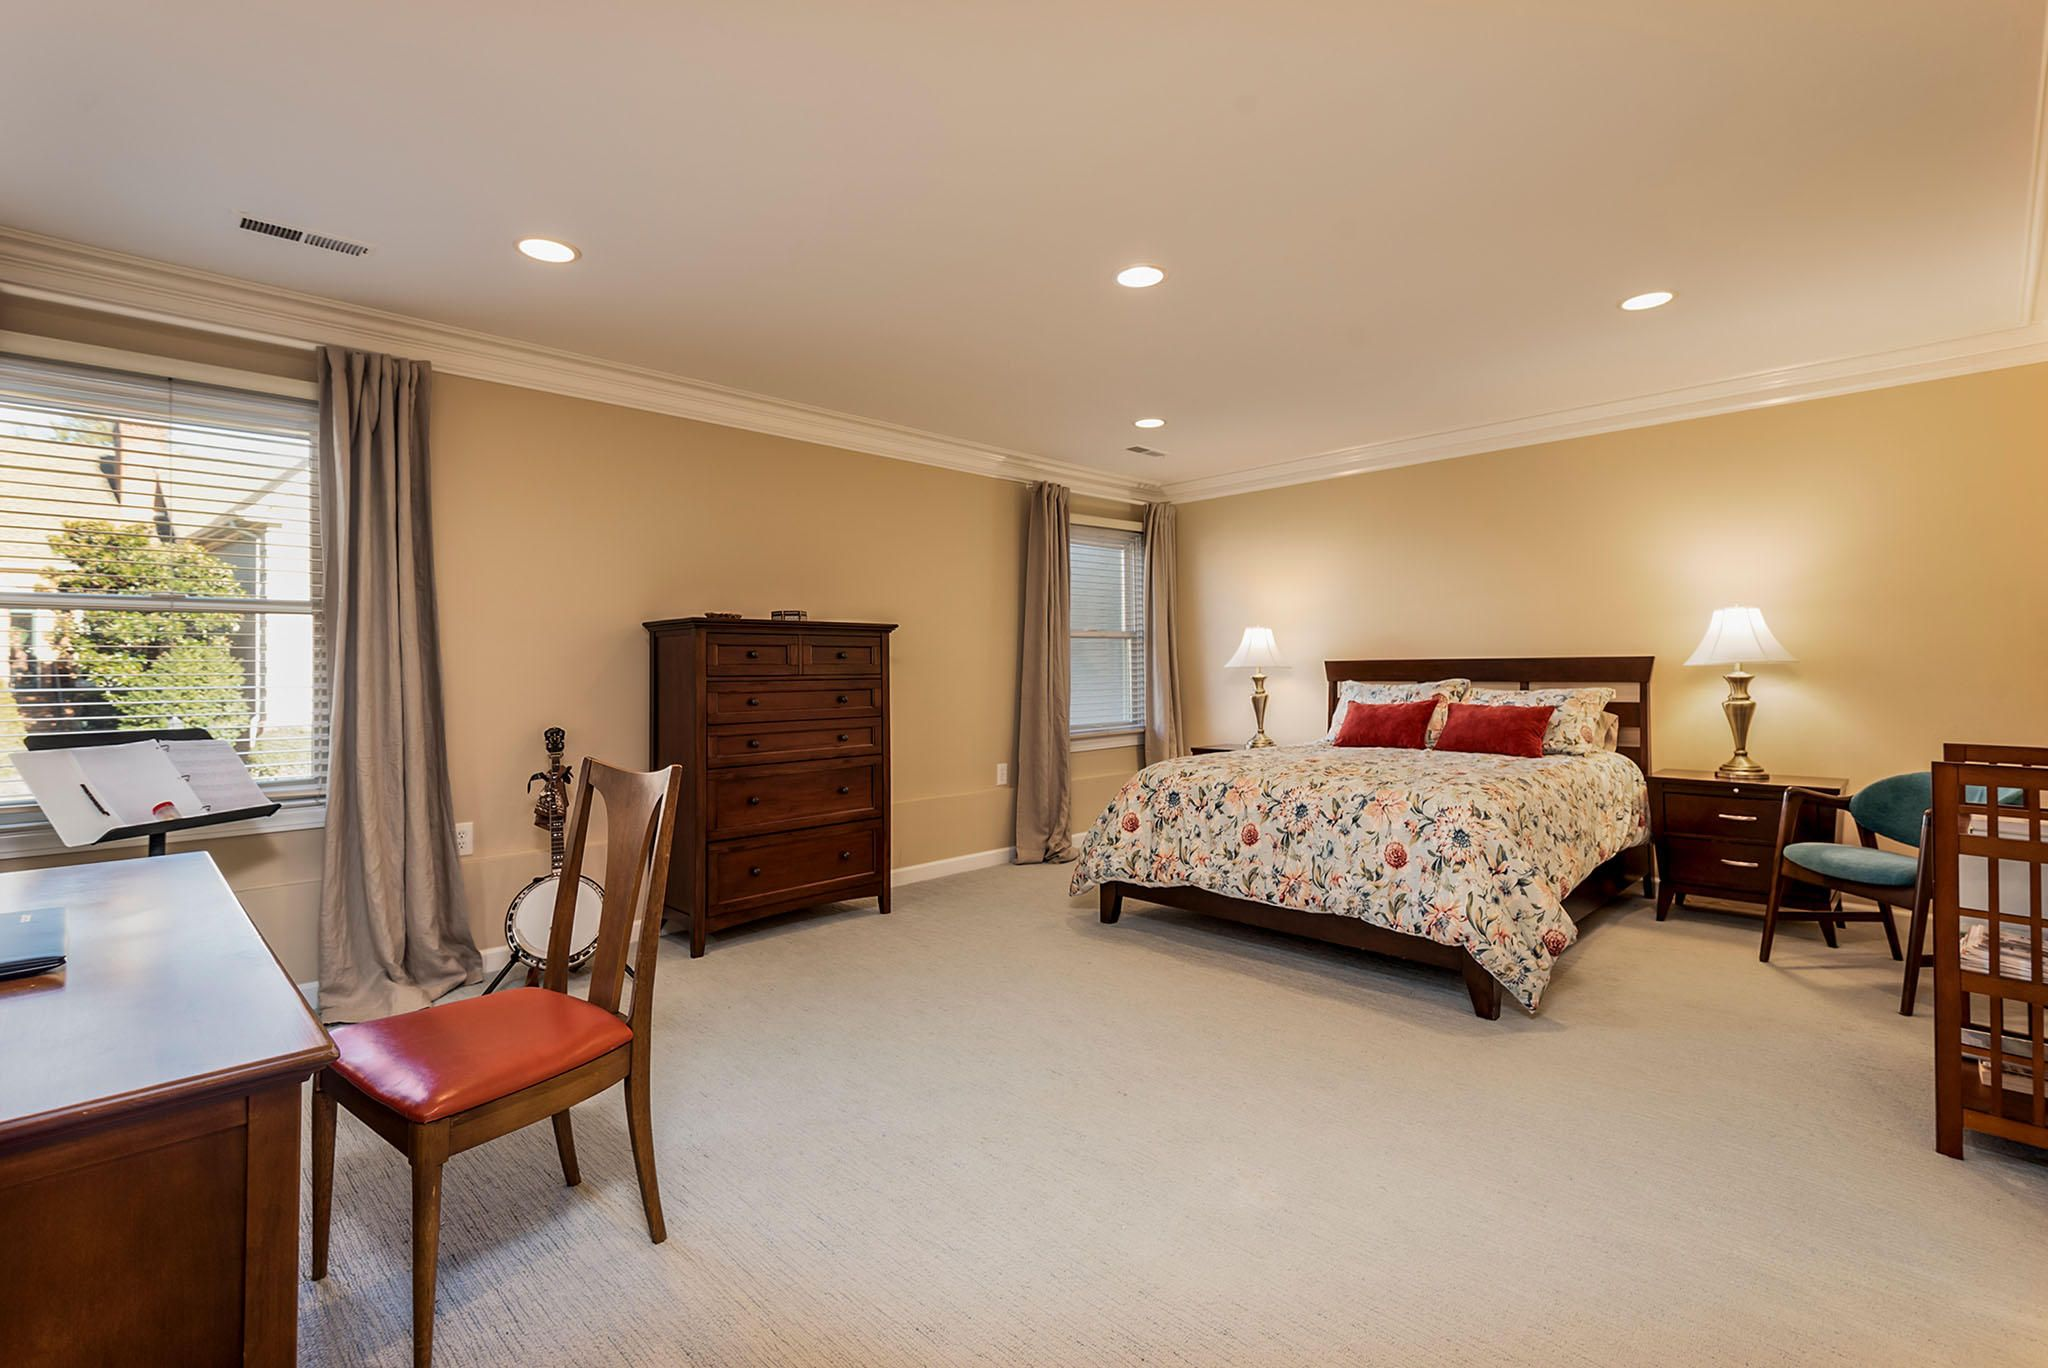 King-Sized Master Bedroom w/ NEW Carpet